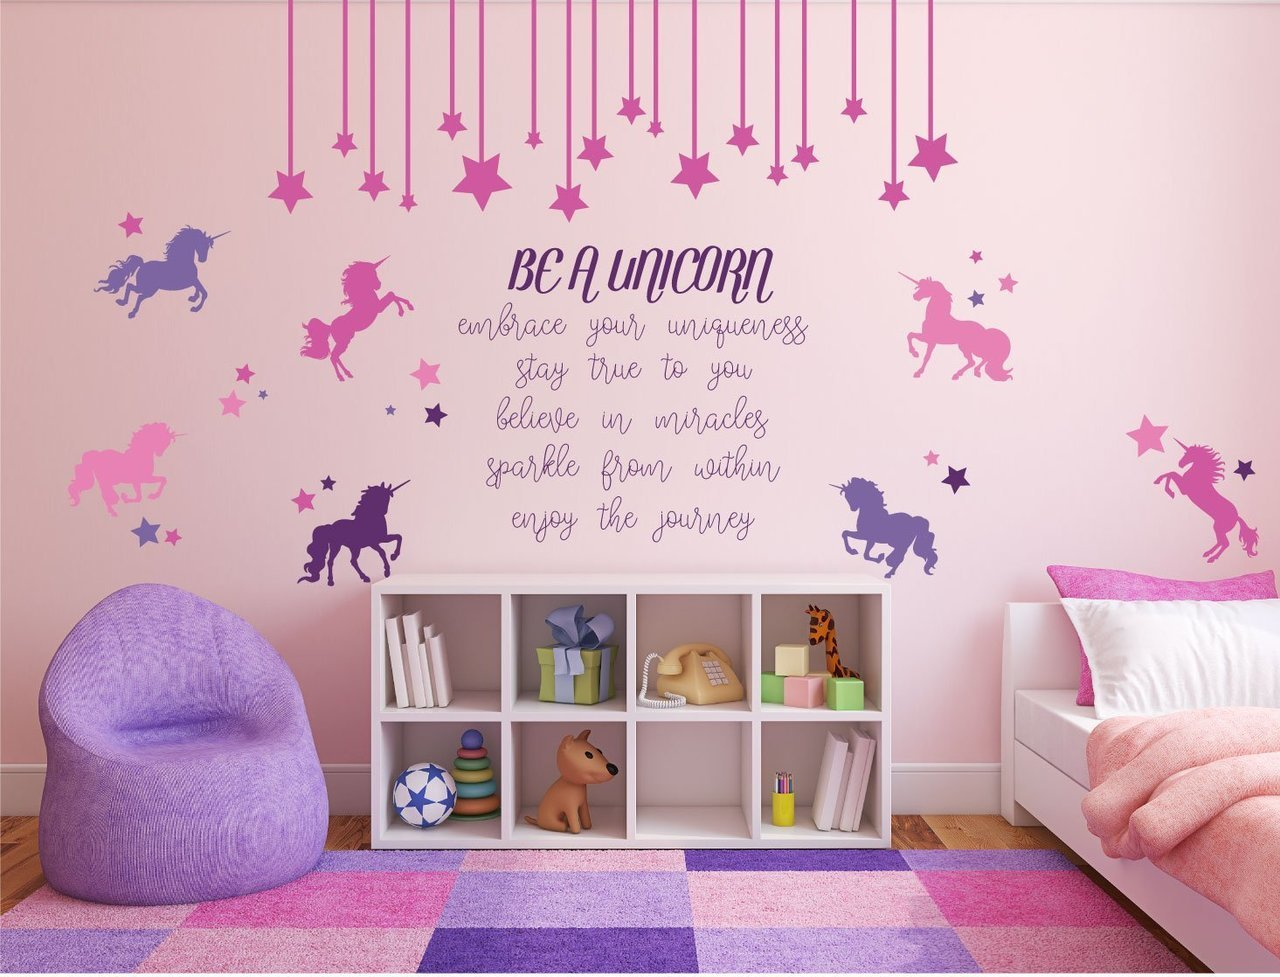 Be A Unicorn Full Wall Mural With Quote Unicorn And Stars